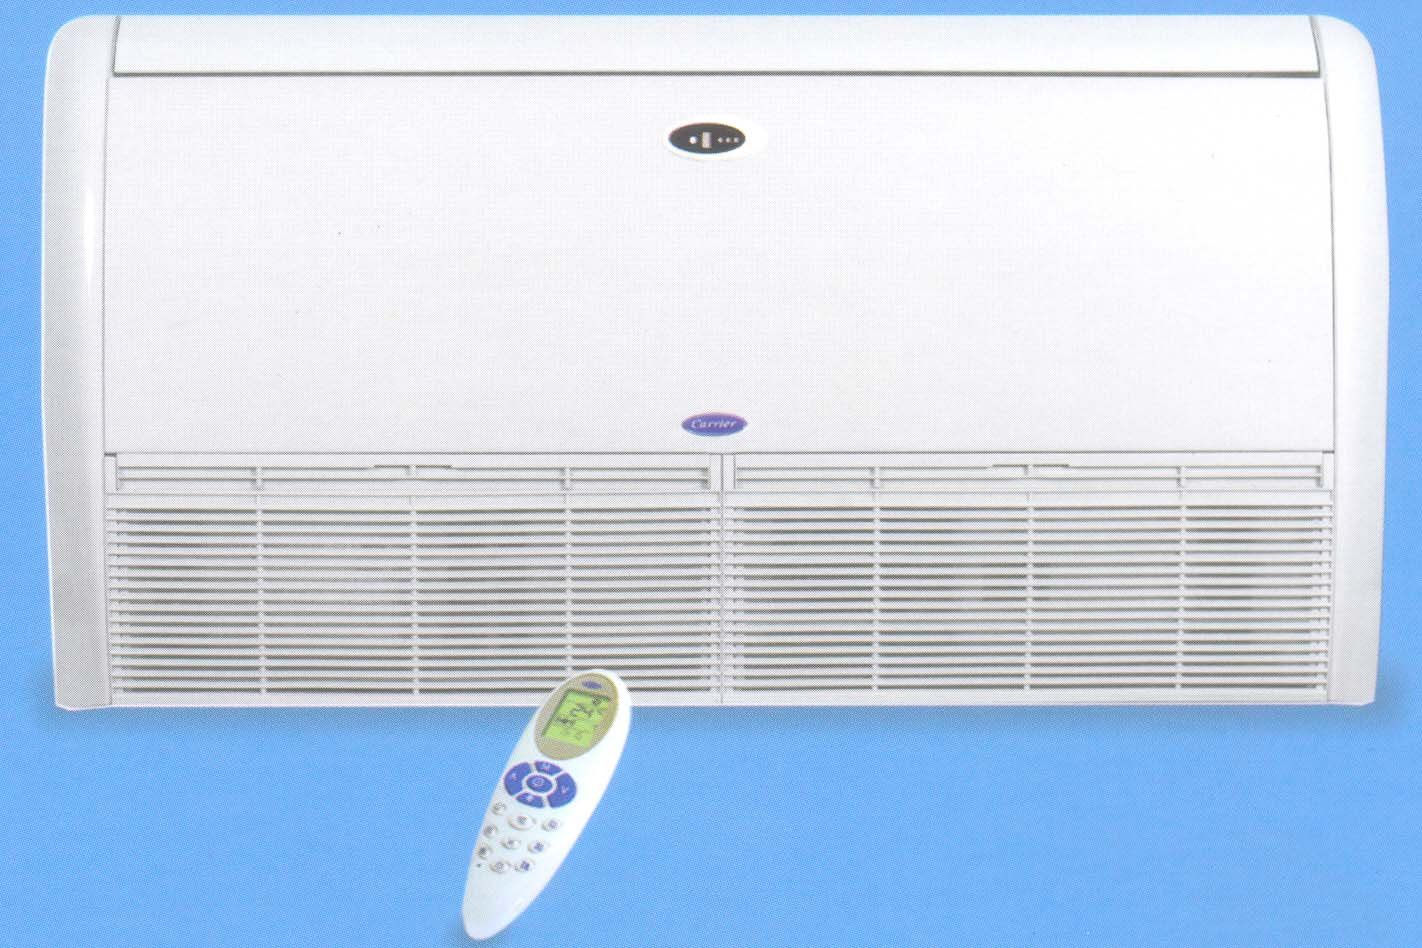 carrier ac unit harmony size 14 buy air condition carrier window room unit living room unit dining room unit product on alibabacom - Carrier Air Conditioner